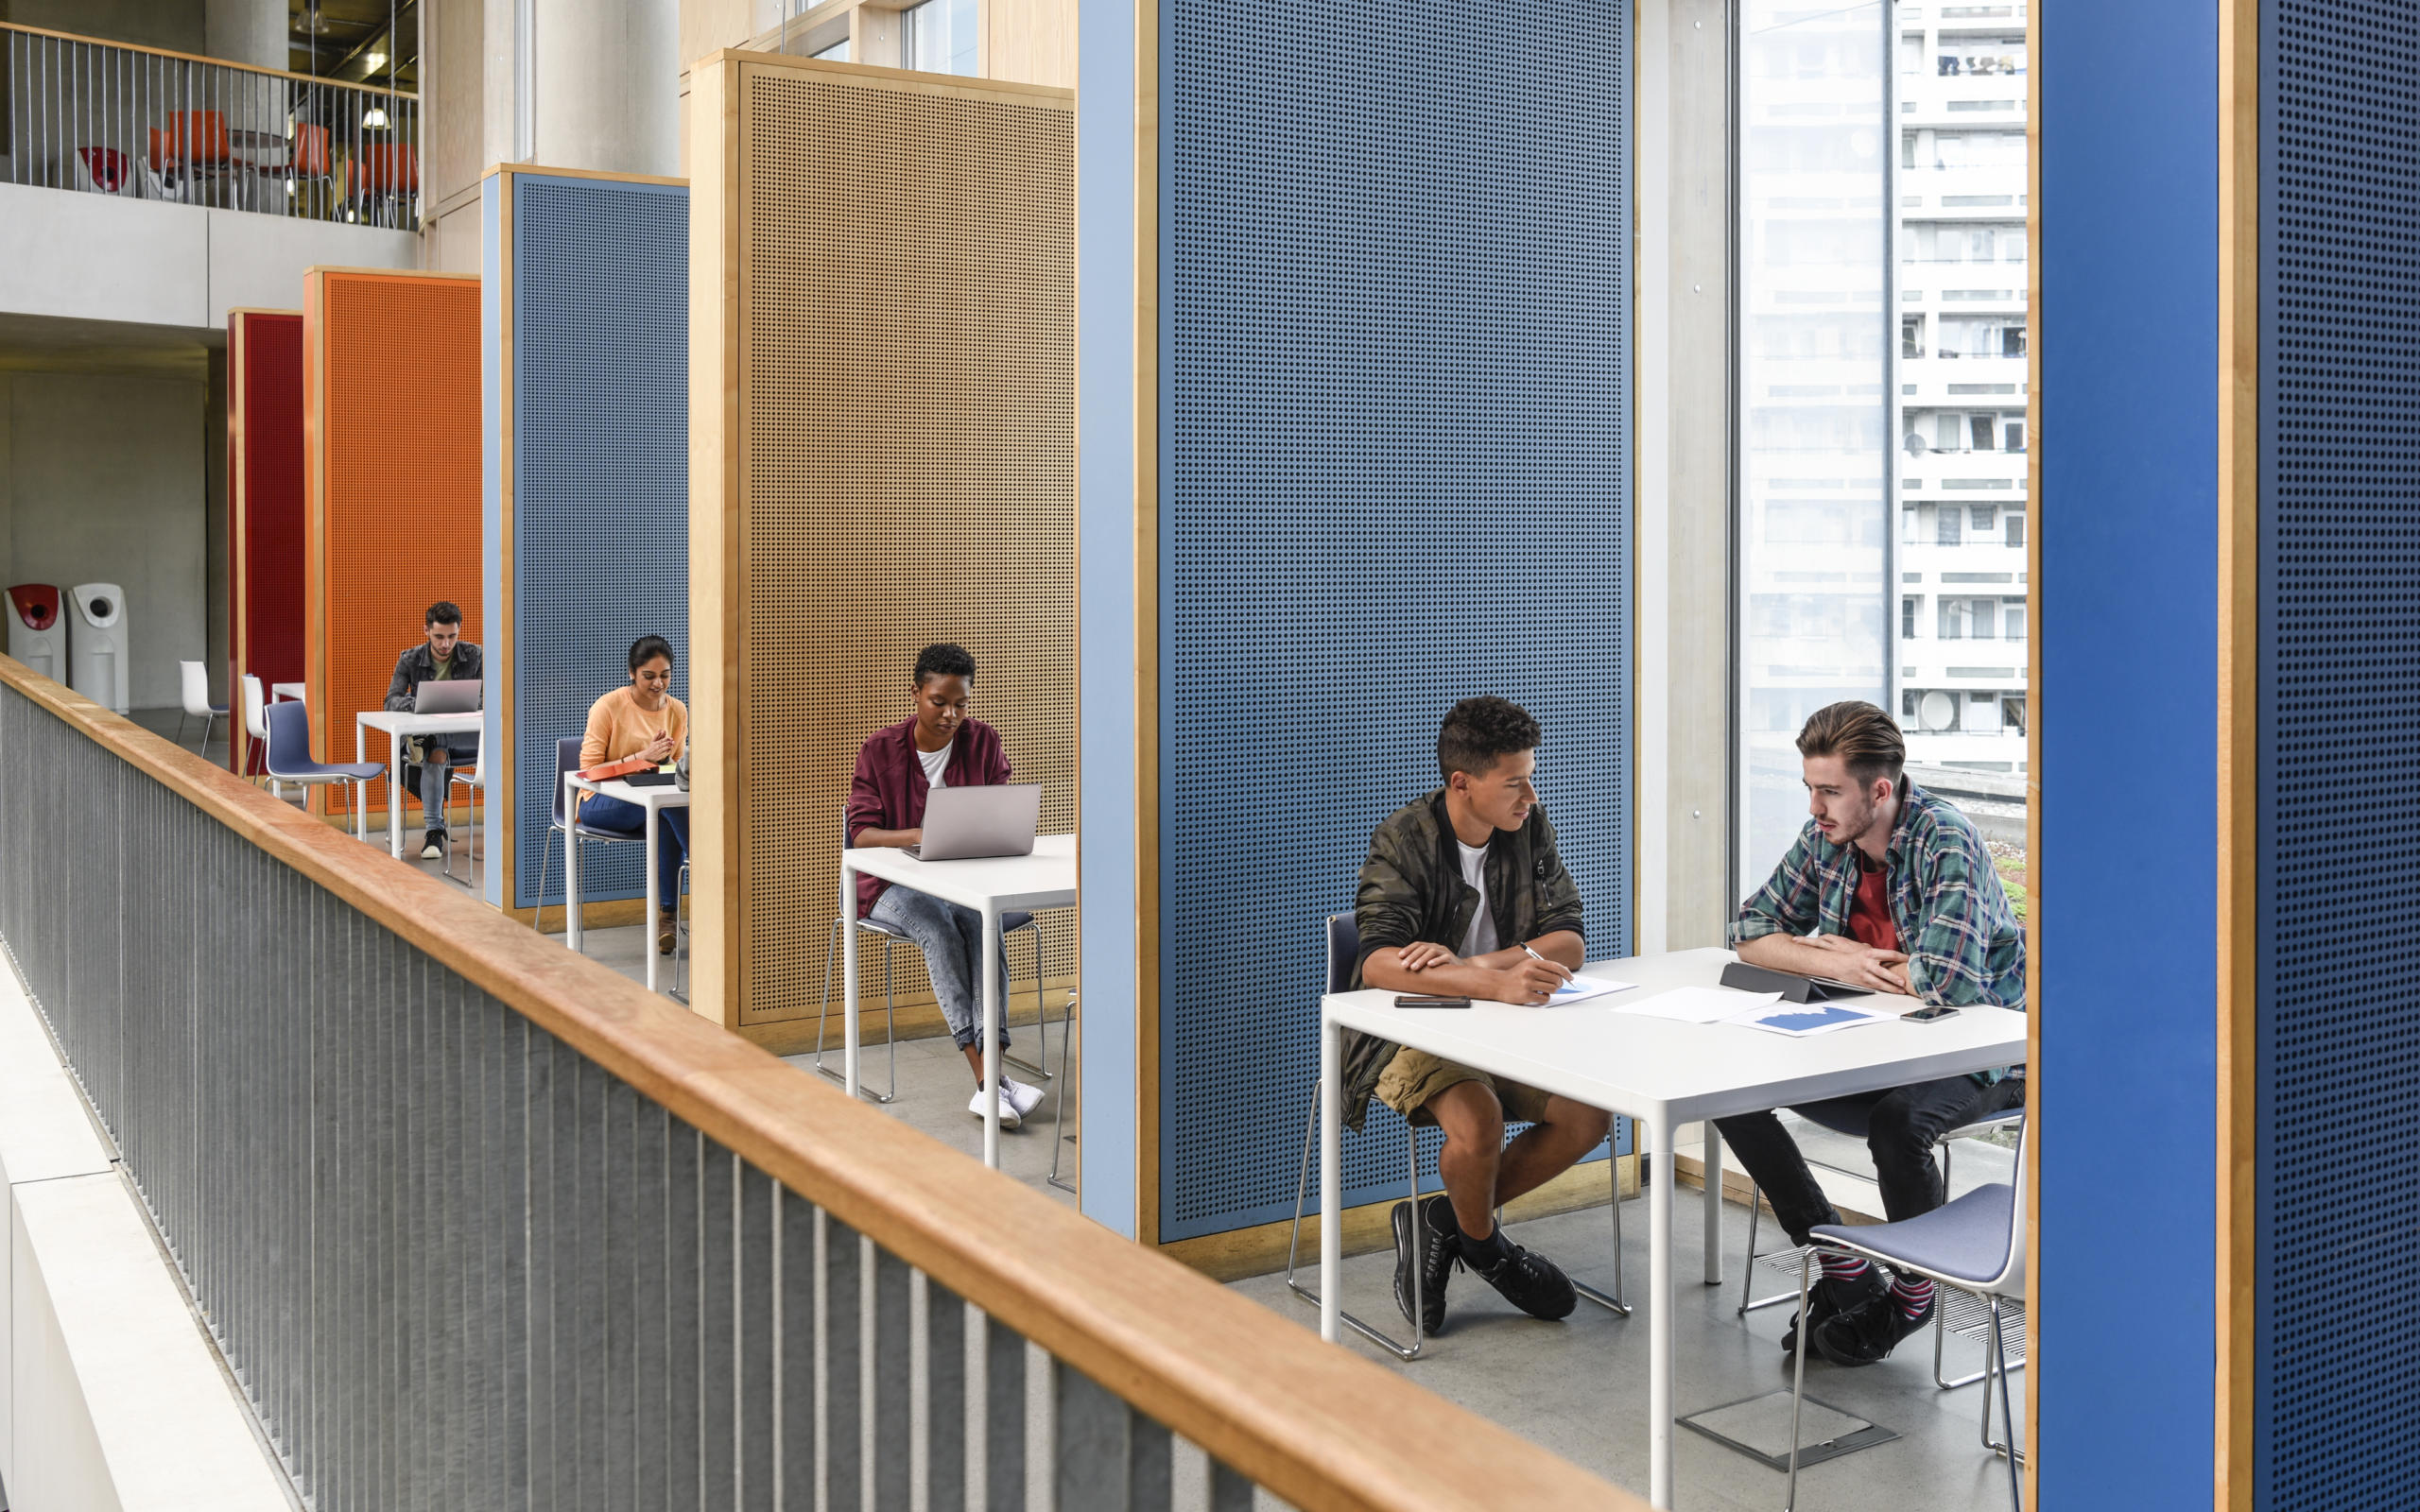 Row of colourful booths for student study, separated by partitions, providing privacy and space to work and meet